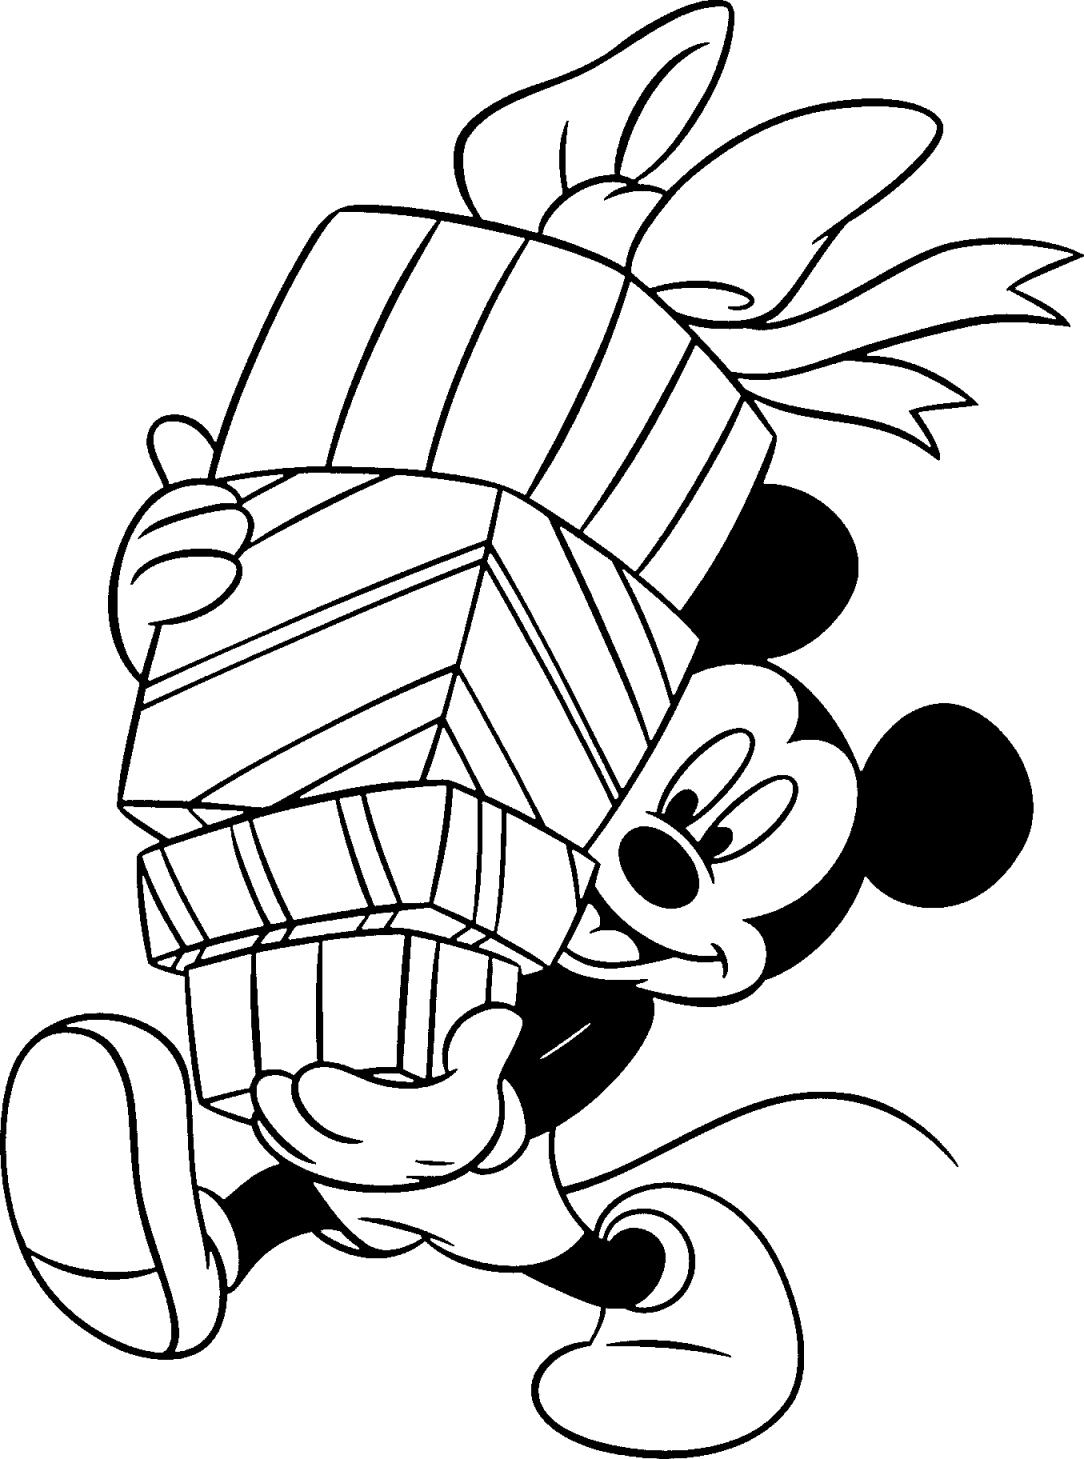 mickey mouse coloring page - birthday mickey mouse coloring pages pinterest birthday